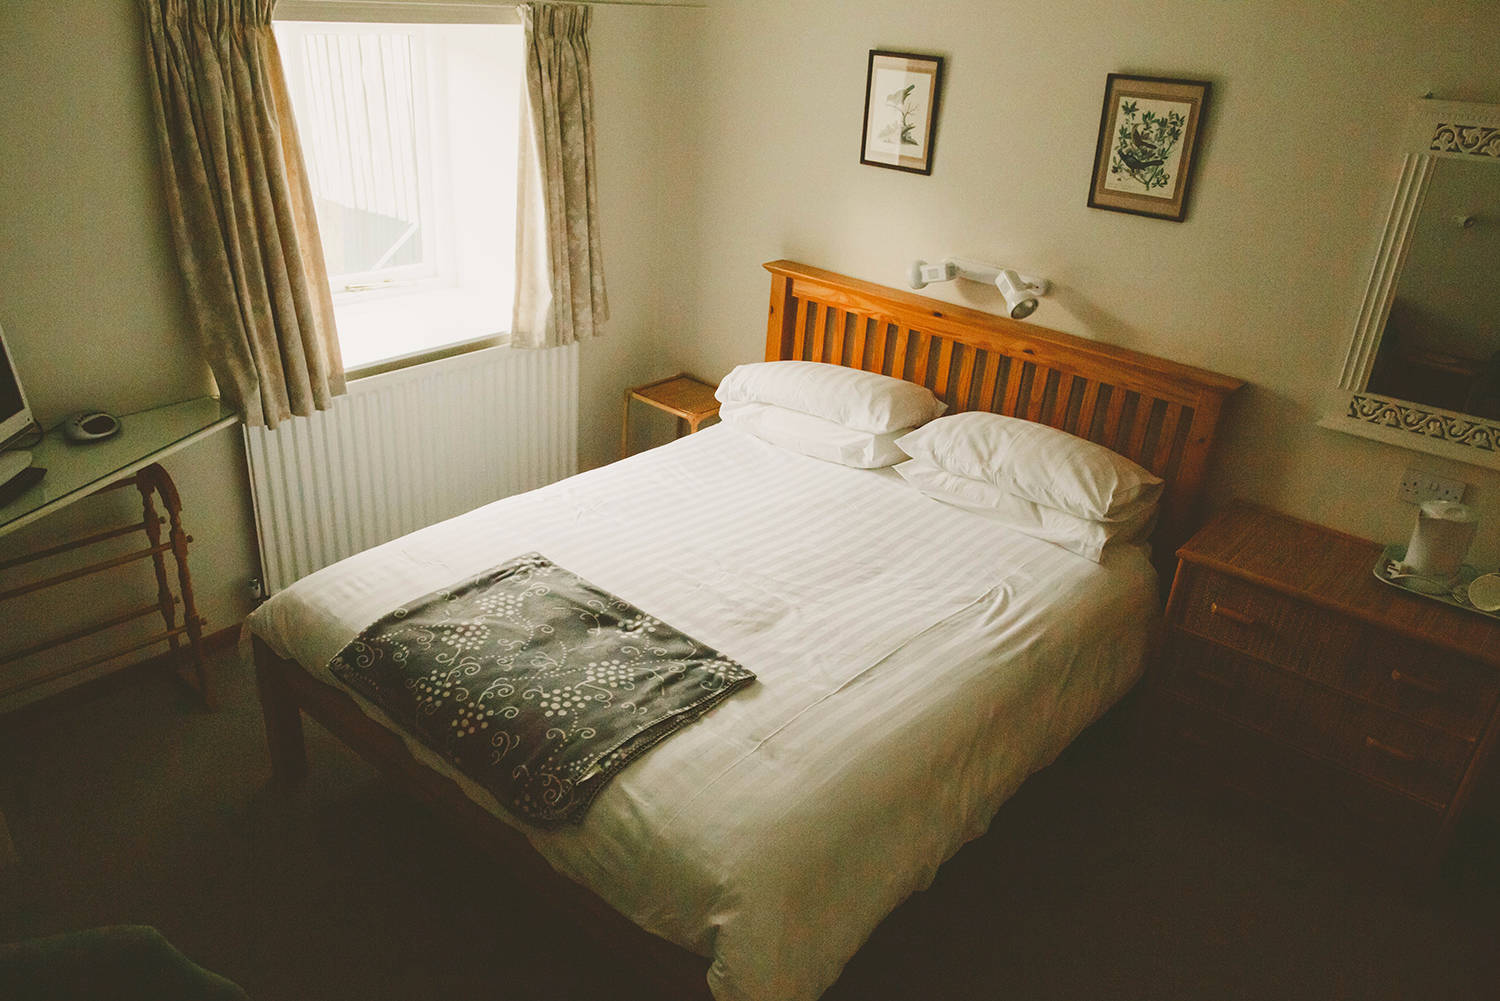 Ryehill Farm self catering cottage bedroom